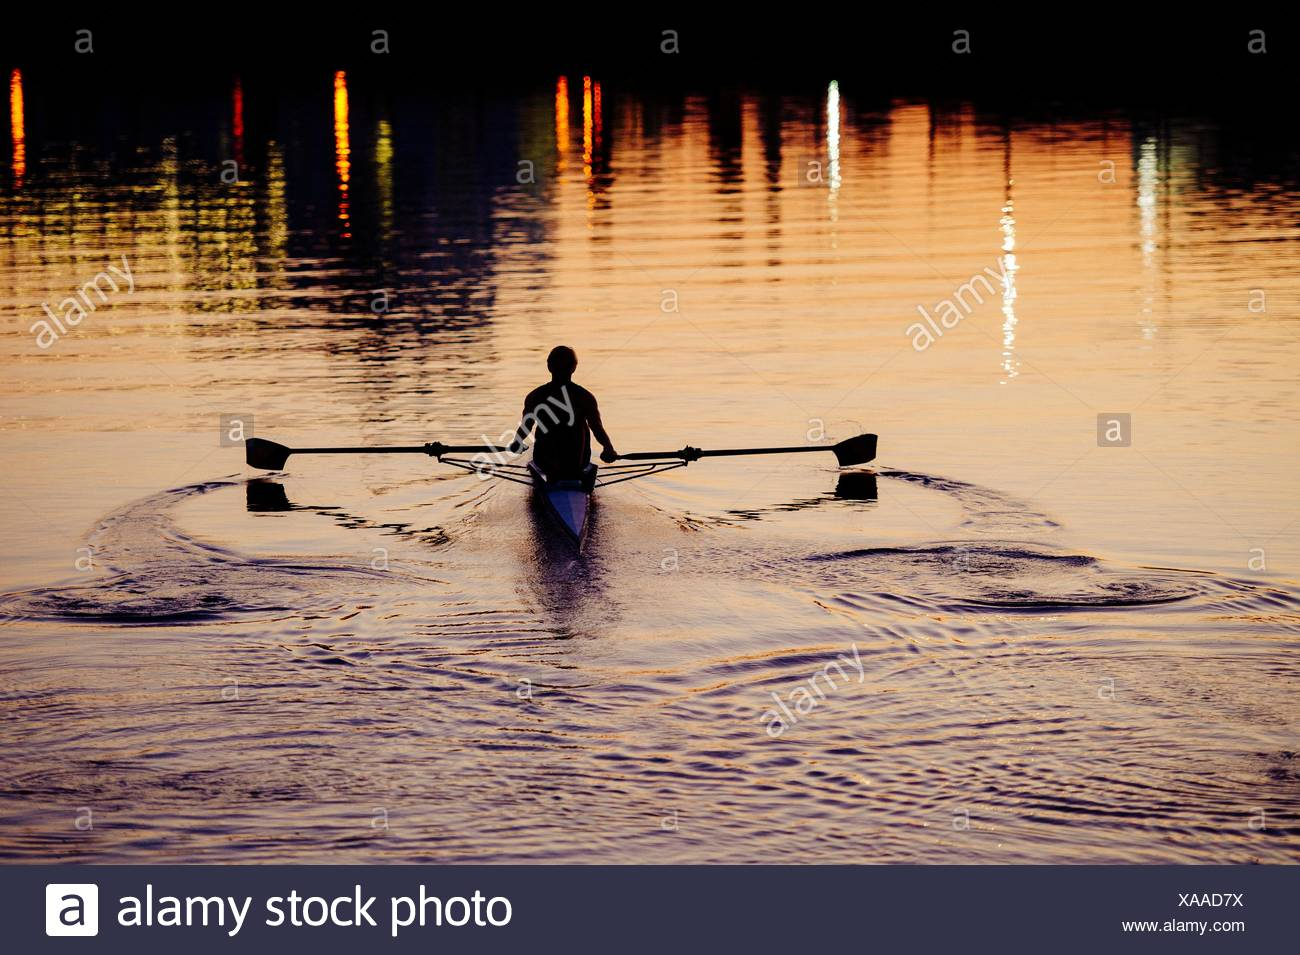 Young man rowing on river at sunset Stock Photo